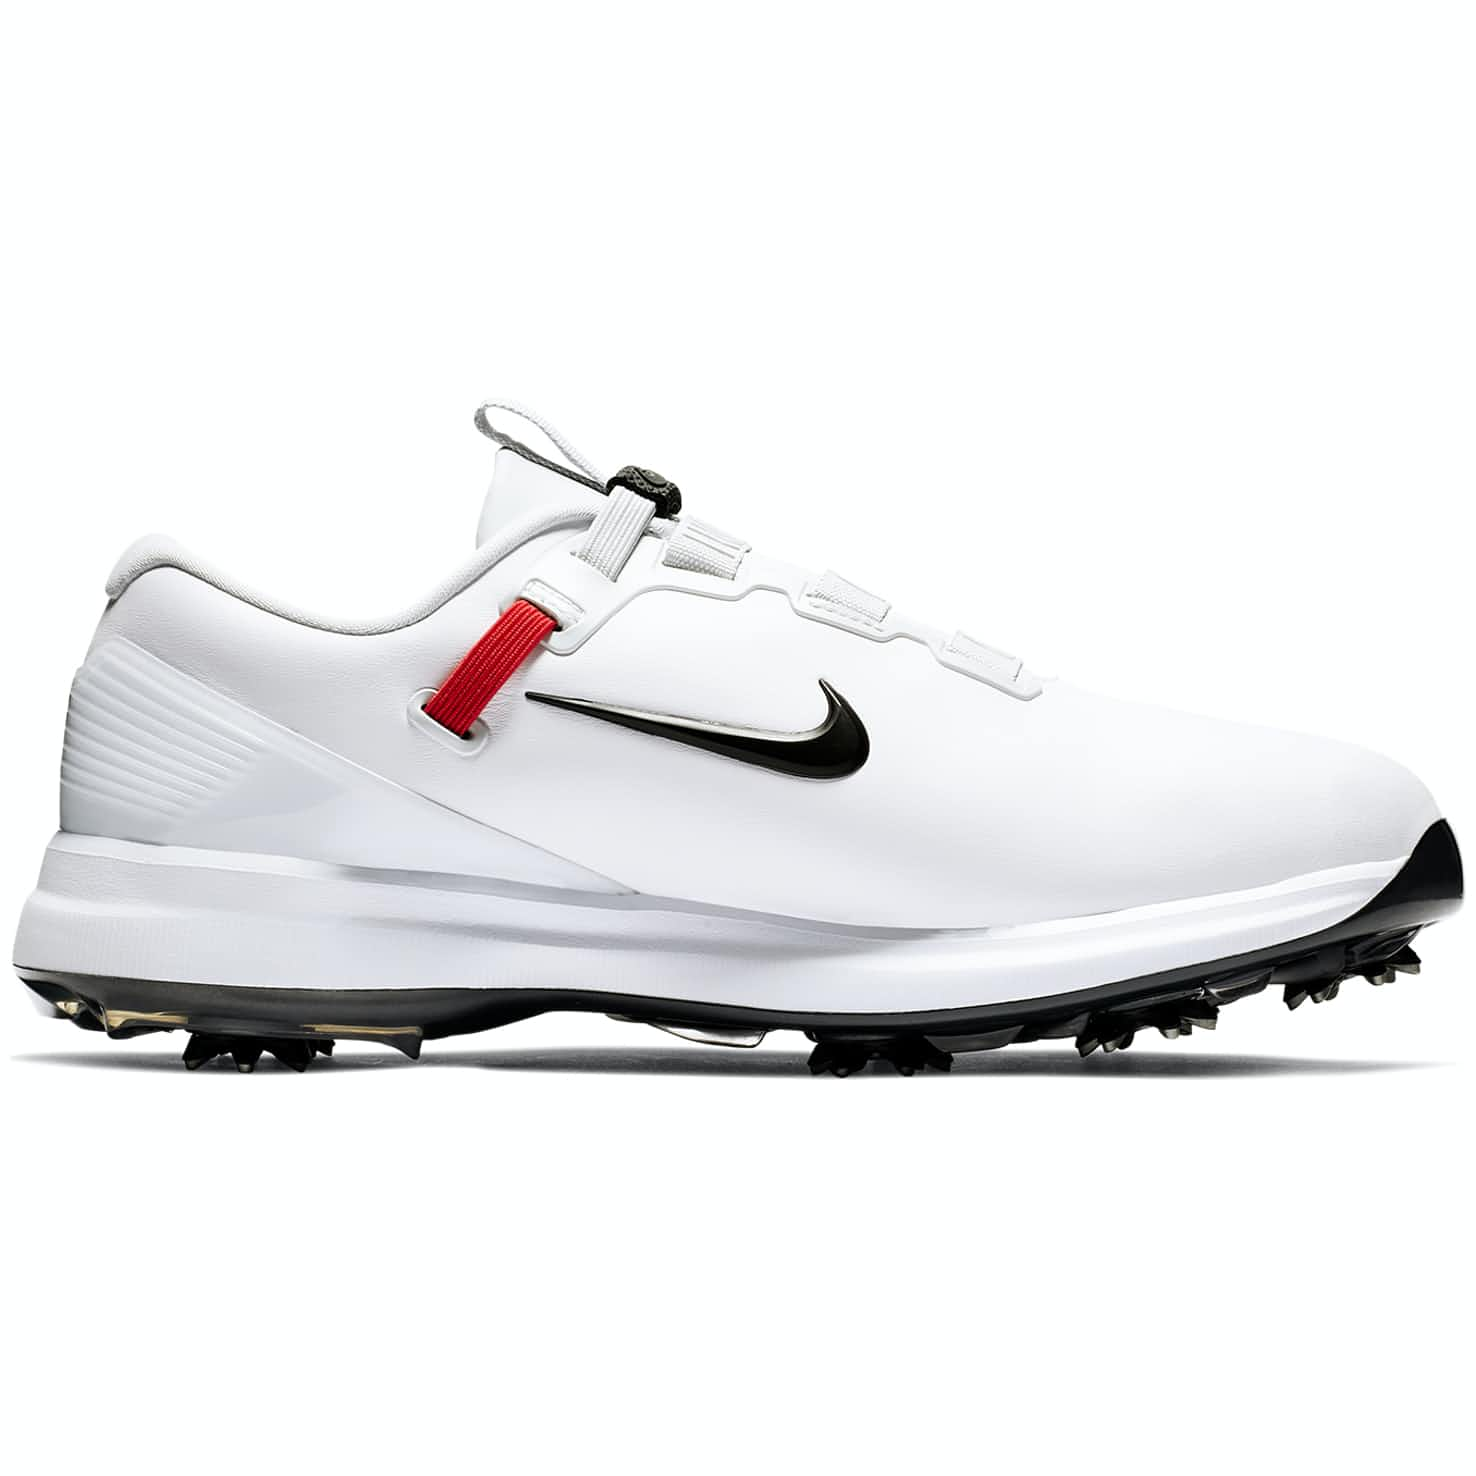 TW '19 QS Golf Shoe White/Black/Metallic Cool Grey - Summer 19